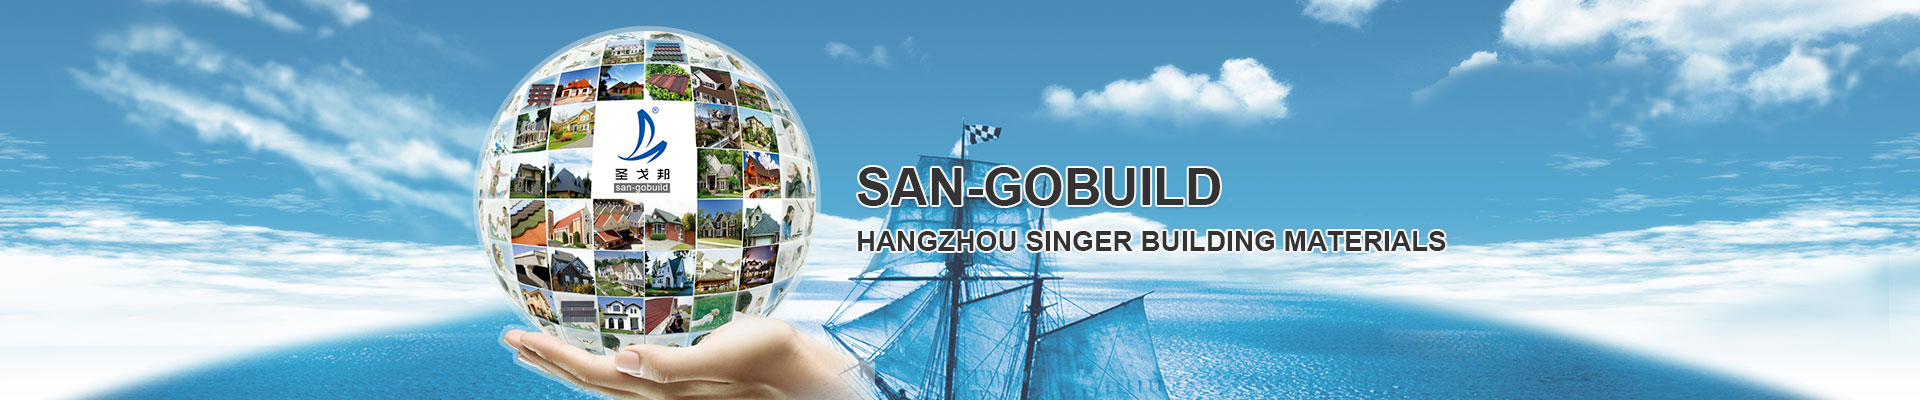 Hangzhou Singer Building Materials Co., Ltd.